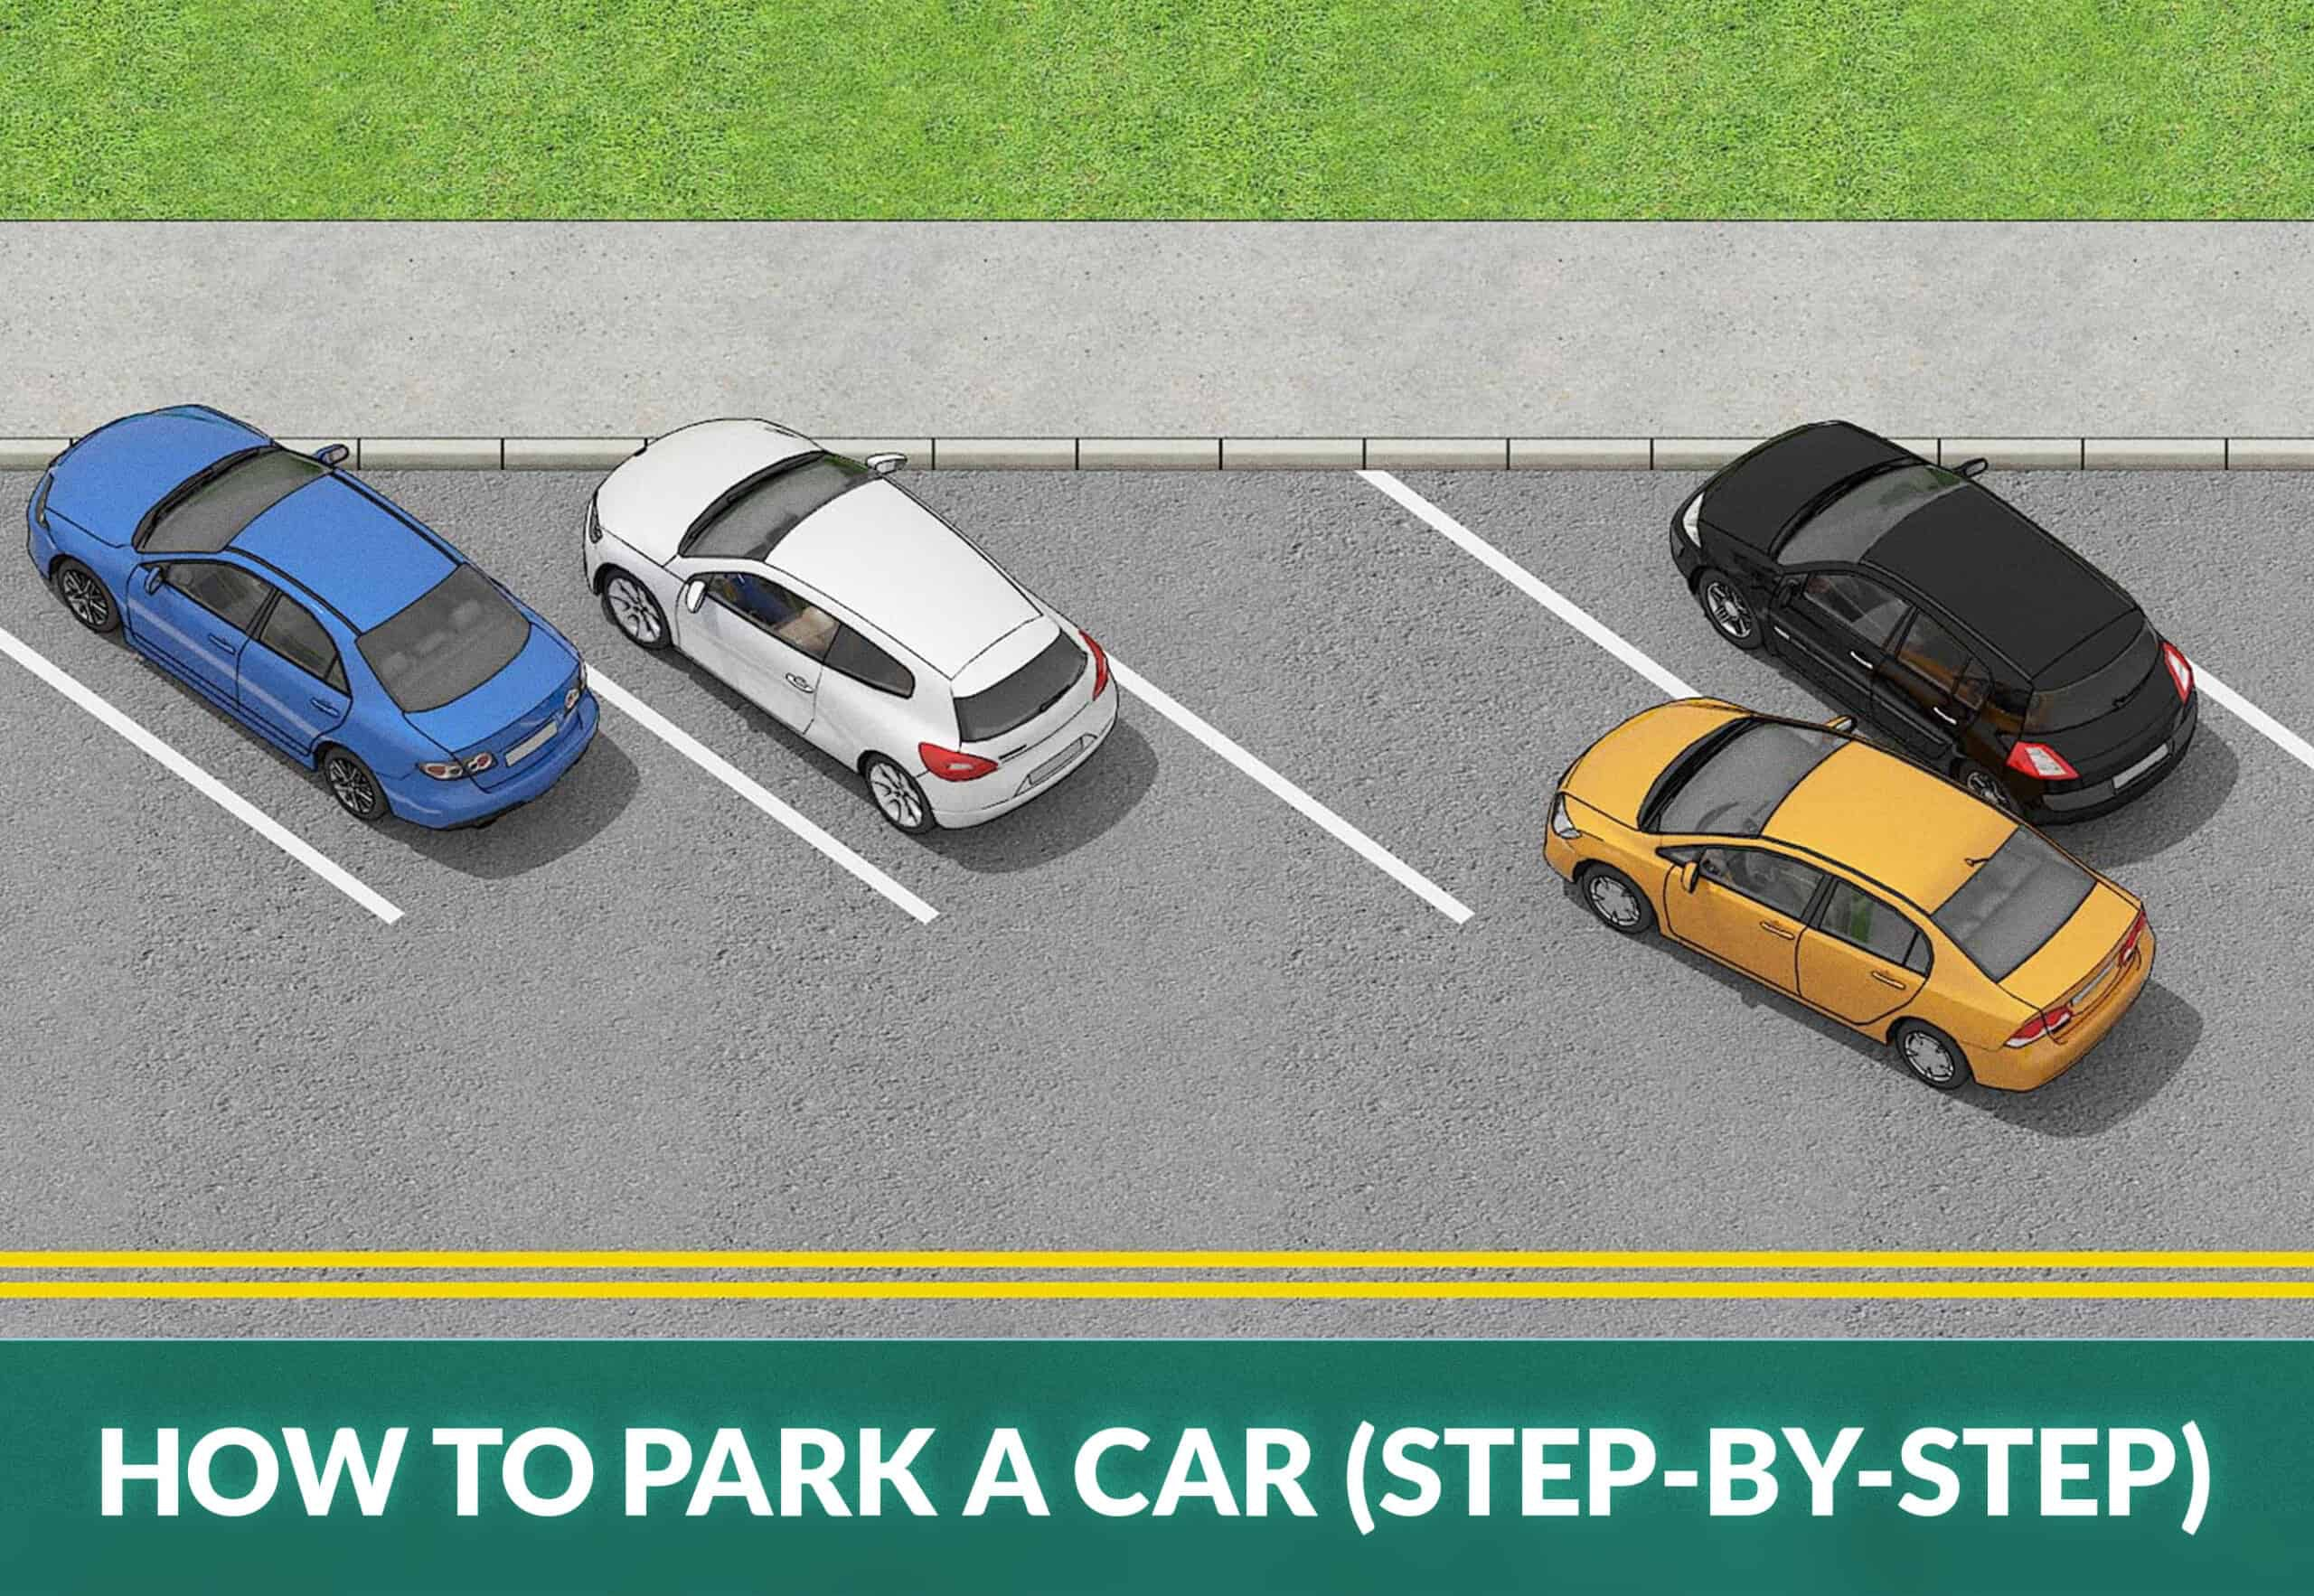 HOW TO PARK A CAR (STEP-BY-STEP)